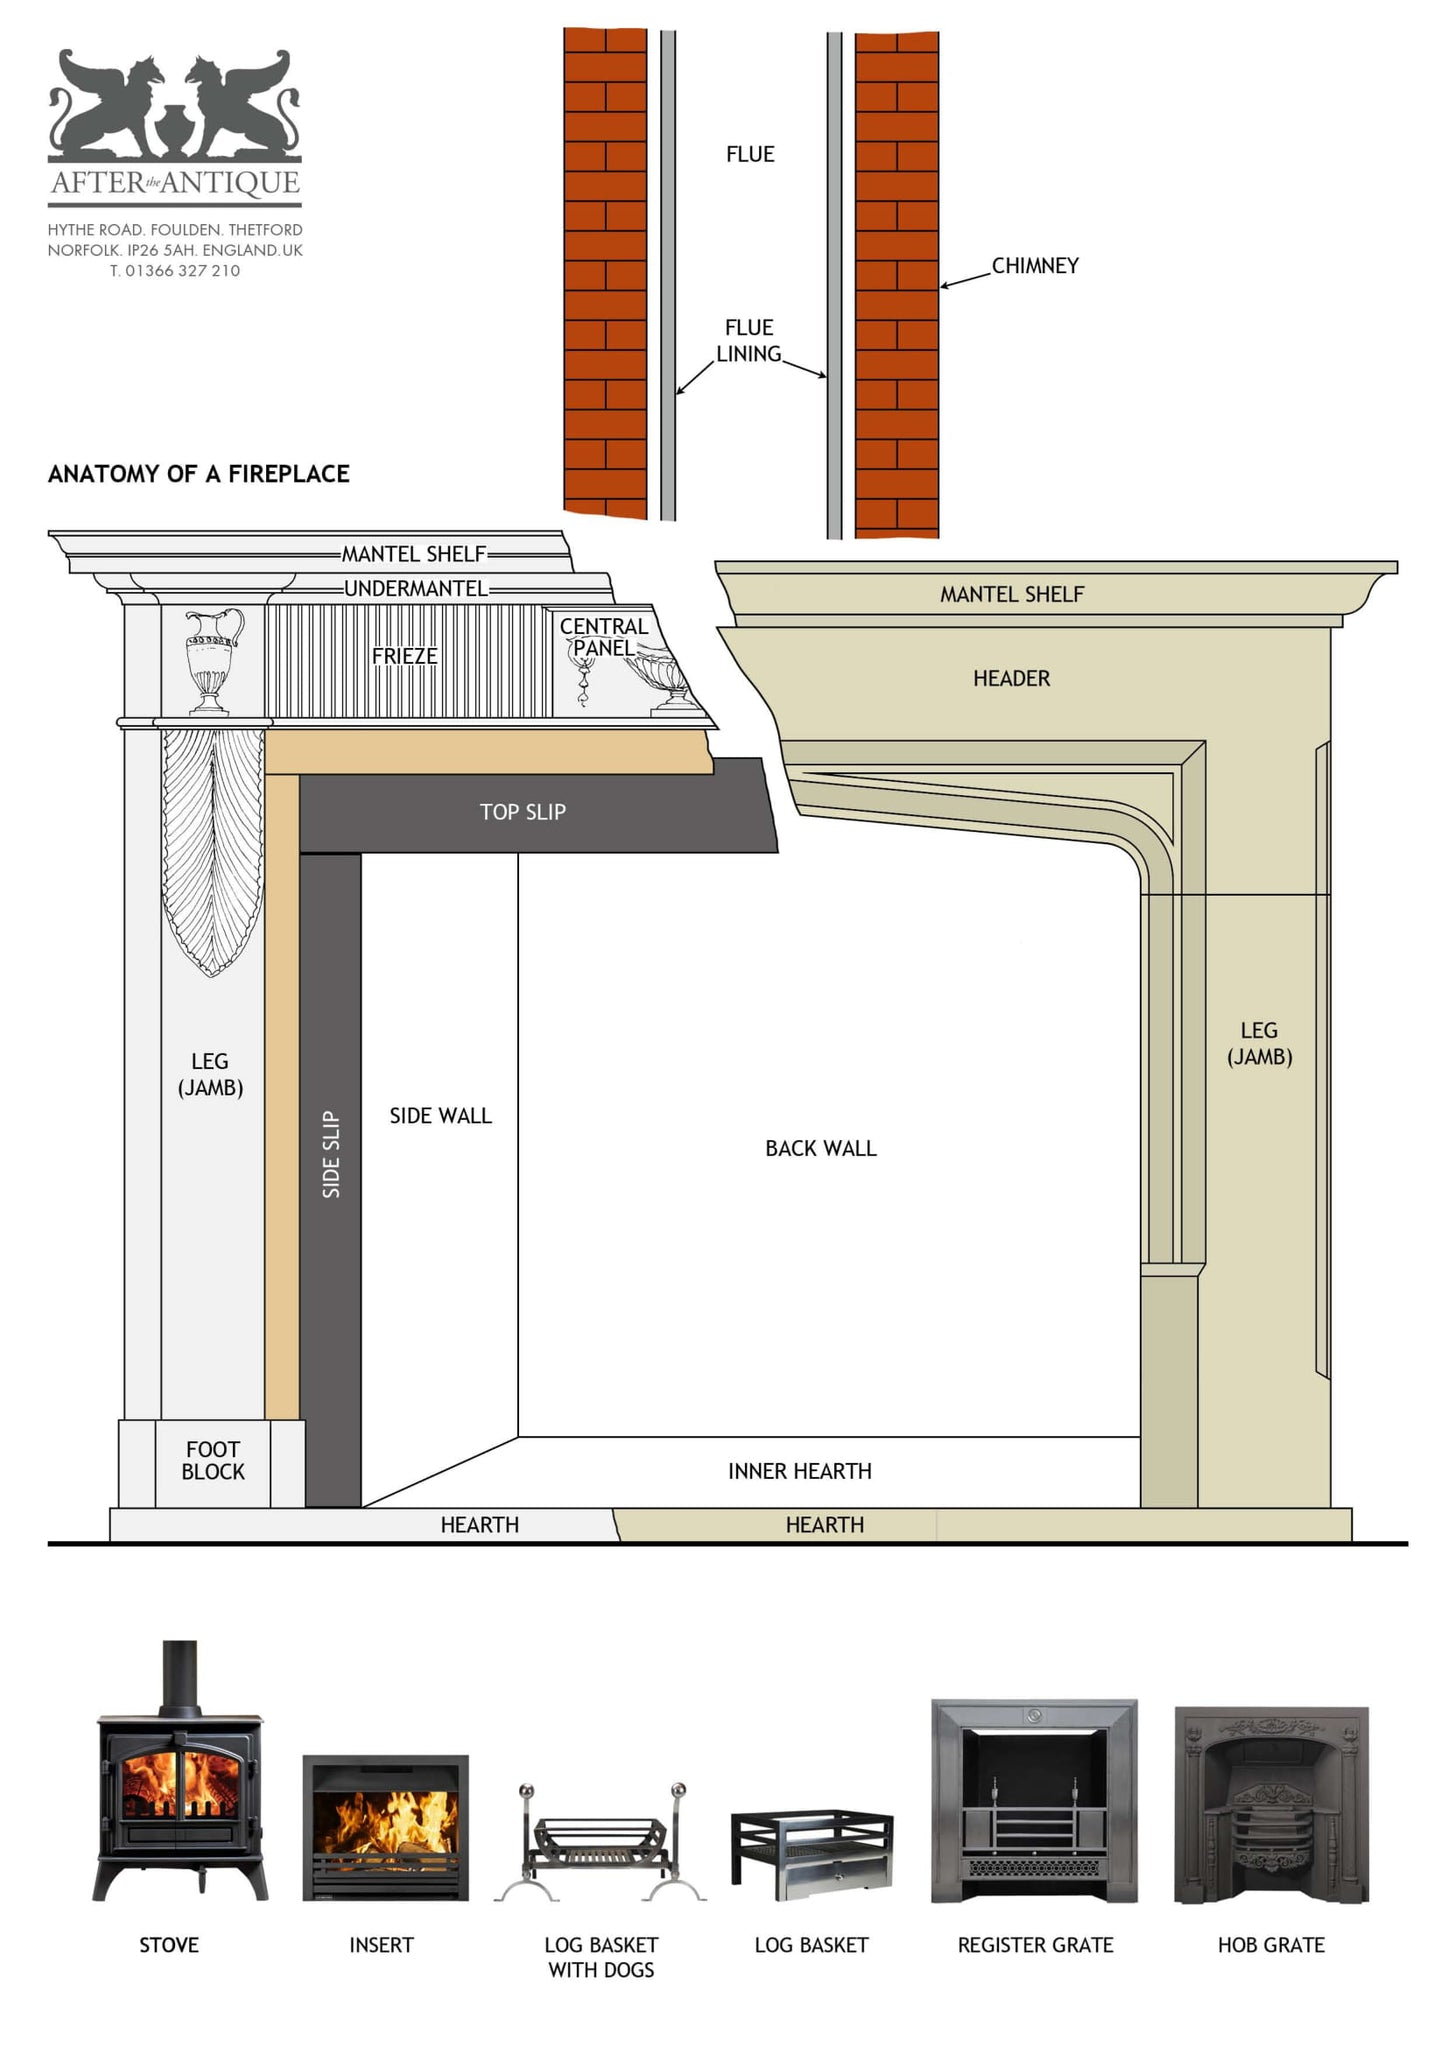 Anatomy of a fireplace – After the Antique